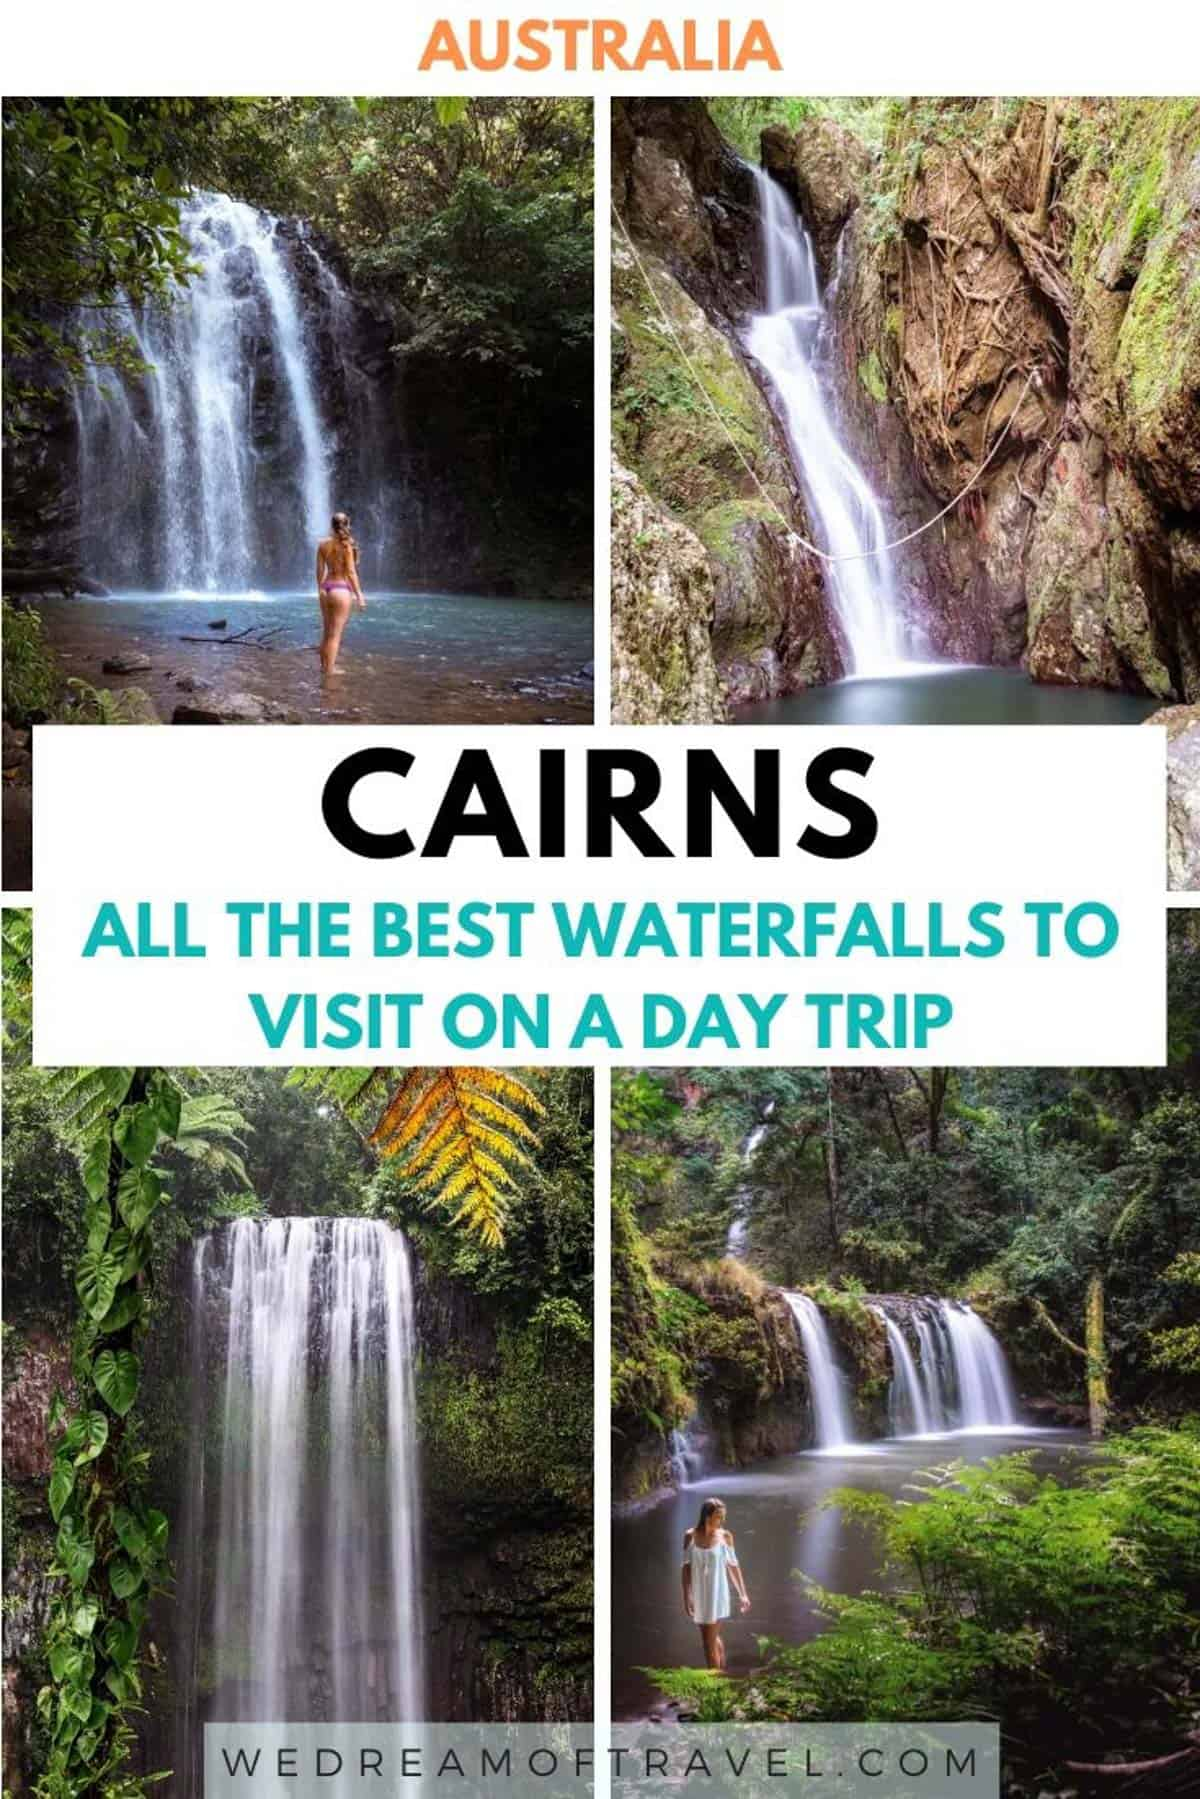 Cairns and Tropical North Queensland are home to some of the most beautiful waterfalls in Australia.  Visiting these falls is one of the best things to do in Cairns.  This guide will help you discover all the best waterfalls near Cairns for an epic day trip.  With photography of each to inspire you and a map to help you plan! #cairns #australia #waterfalls